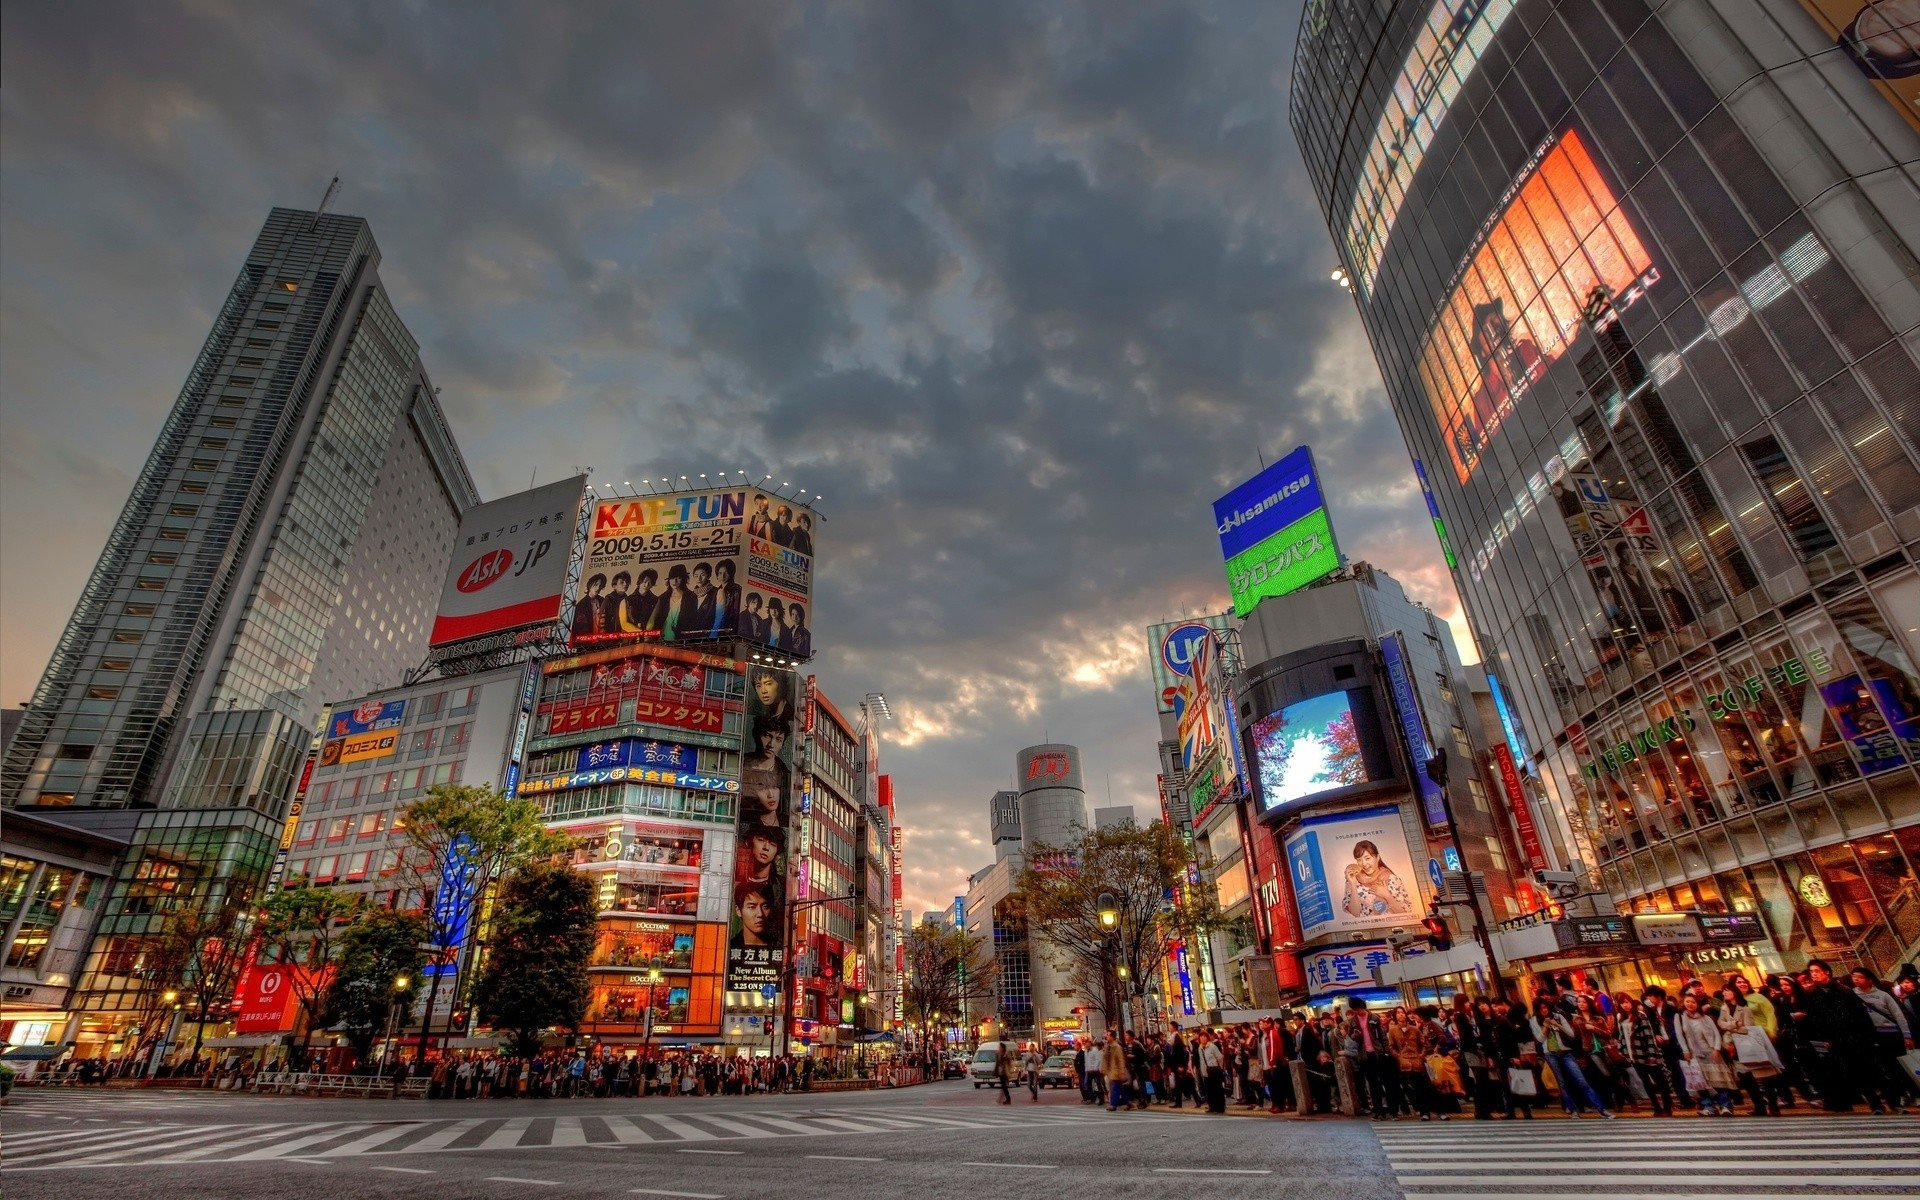 Japan Cityscapes Wallpaper 1920x1200 Japan Cityscapes 1920x1200